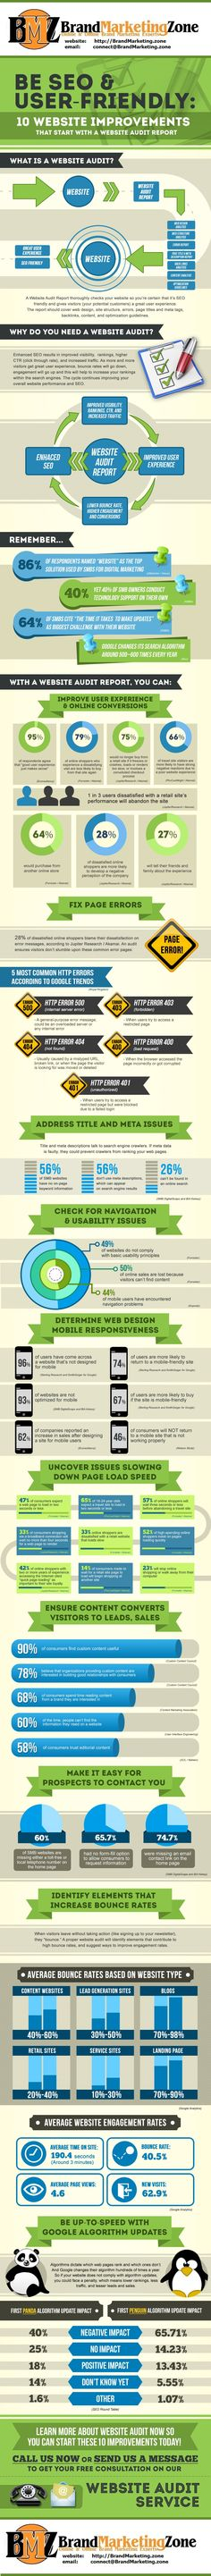 10 Website Improvements That Start with Web Audit Report & Result in Better SEO & User Experience.